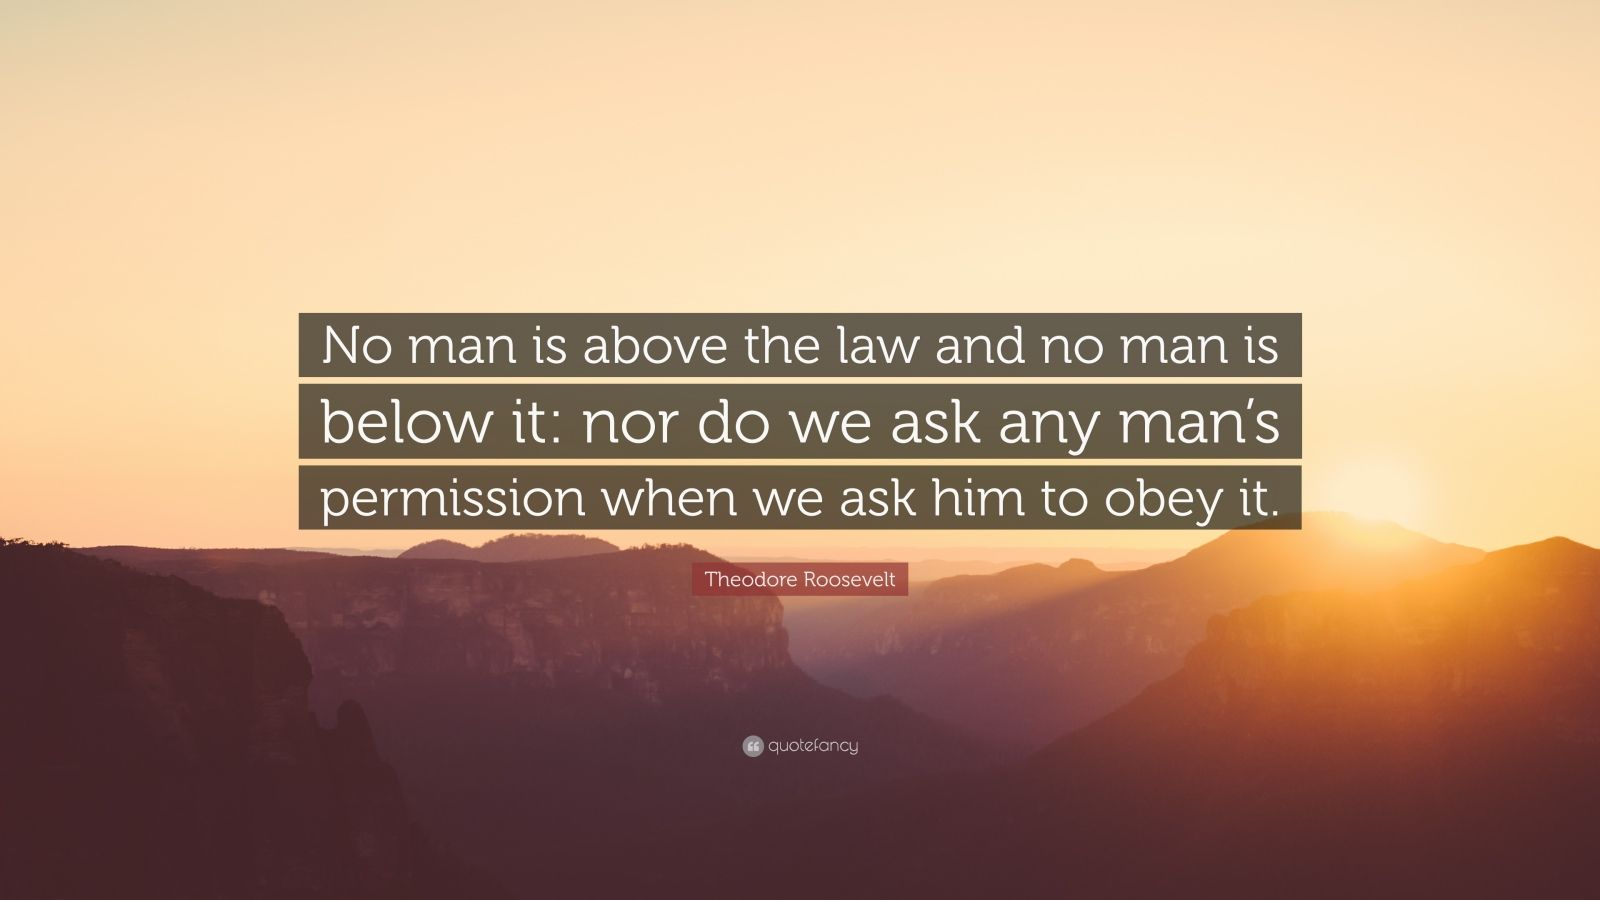 """Theodore Roosevelt Quote: """"No man is above the law and no man is below it: nor do we ask any man's permission when we ask him to obey it."""""""